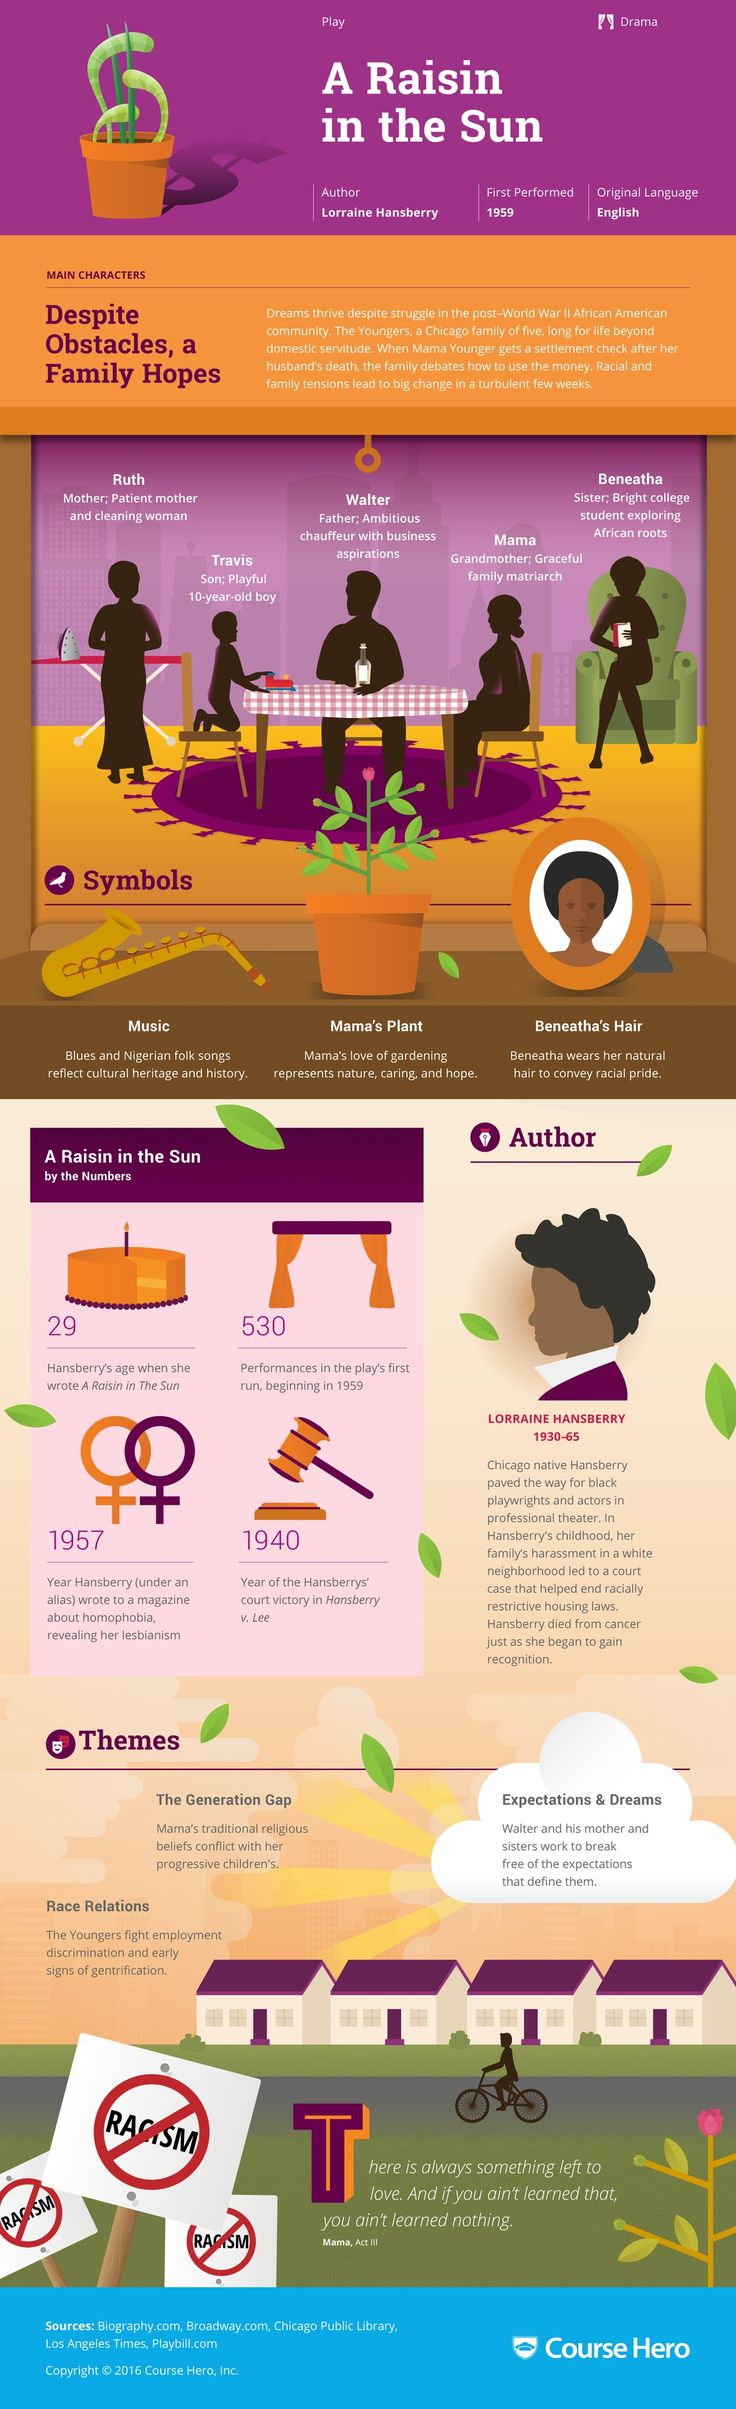 best ideas about lorraine hansberry cities in a raisin in the sun infographic course hero